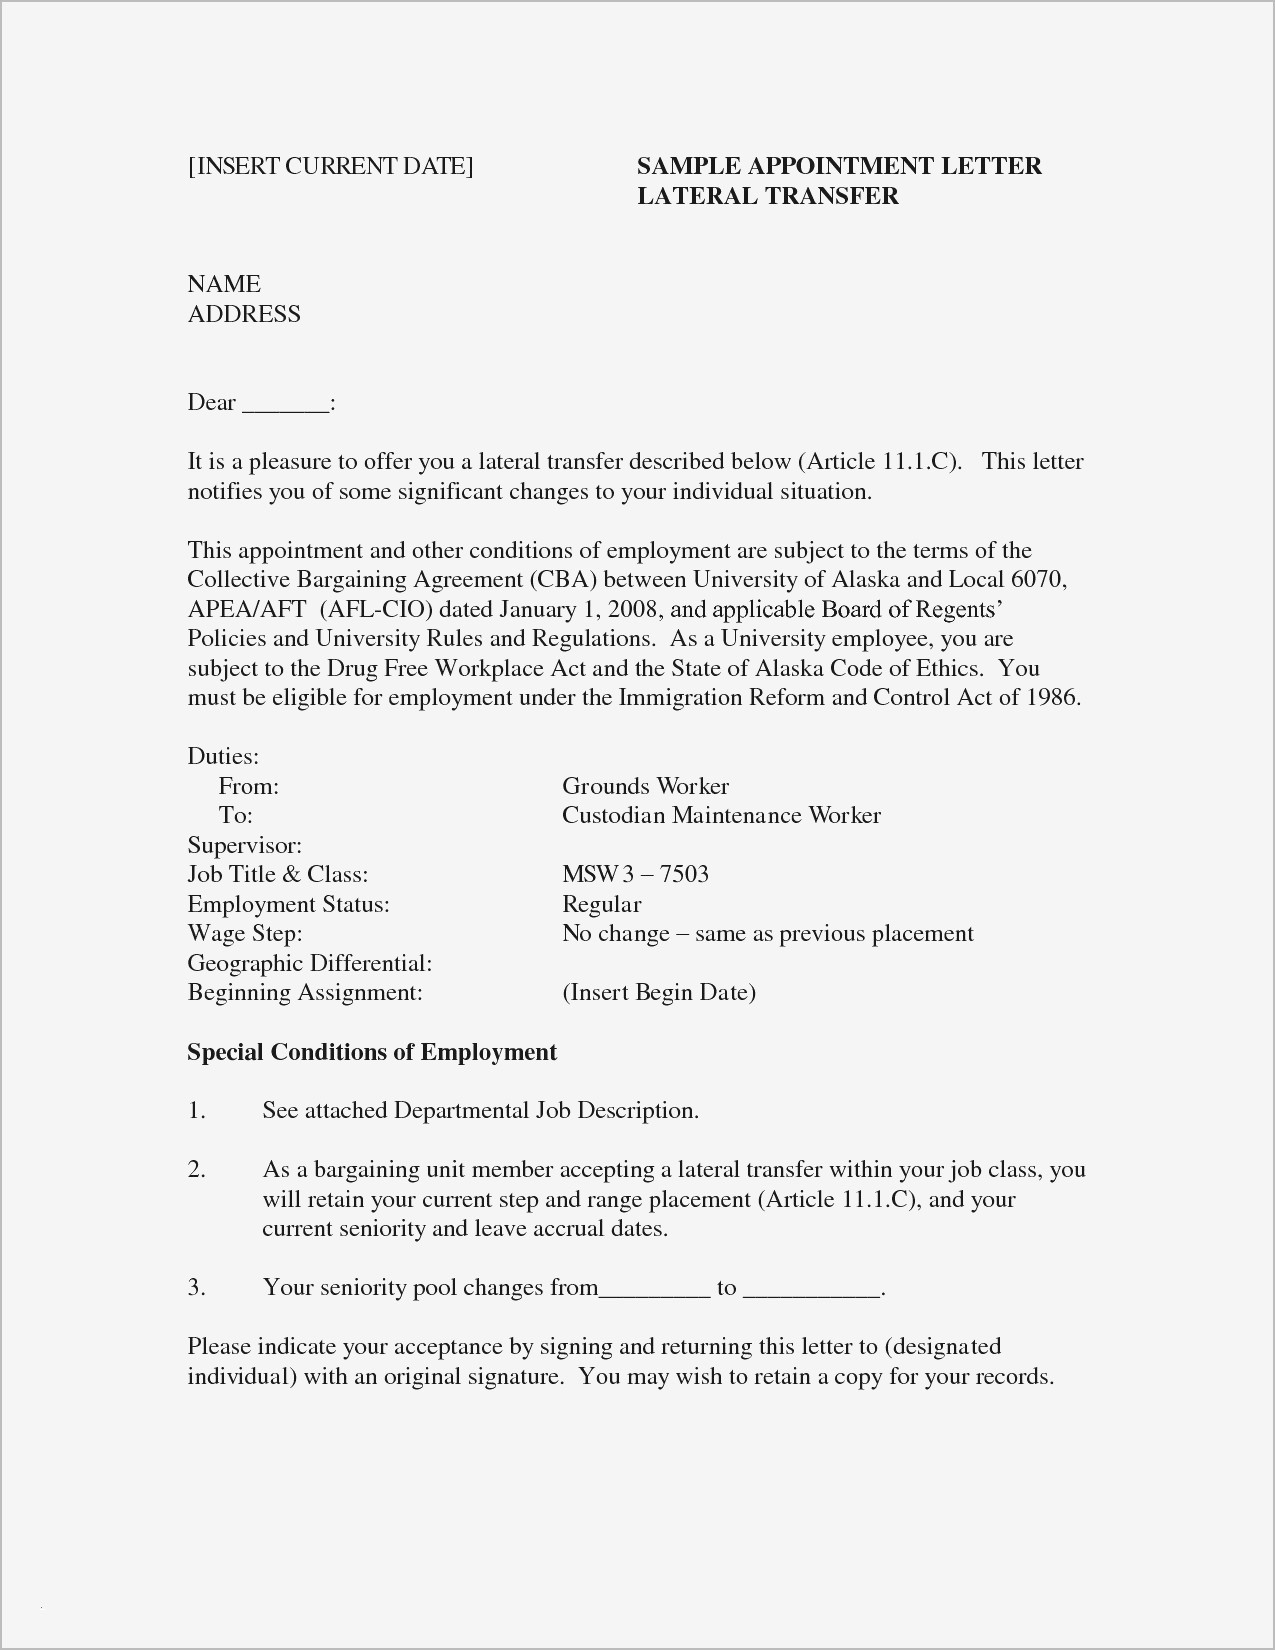 Resume for Collections Specialist - Teacher Job Description for Resume Beautiful Collection Specialist